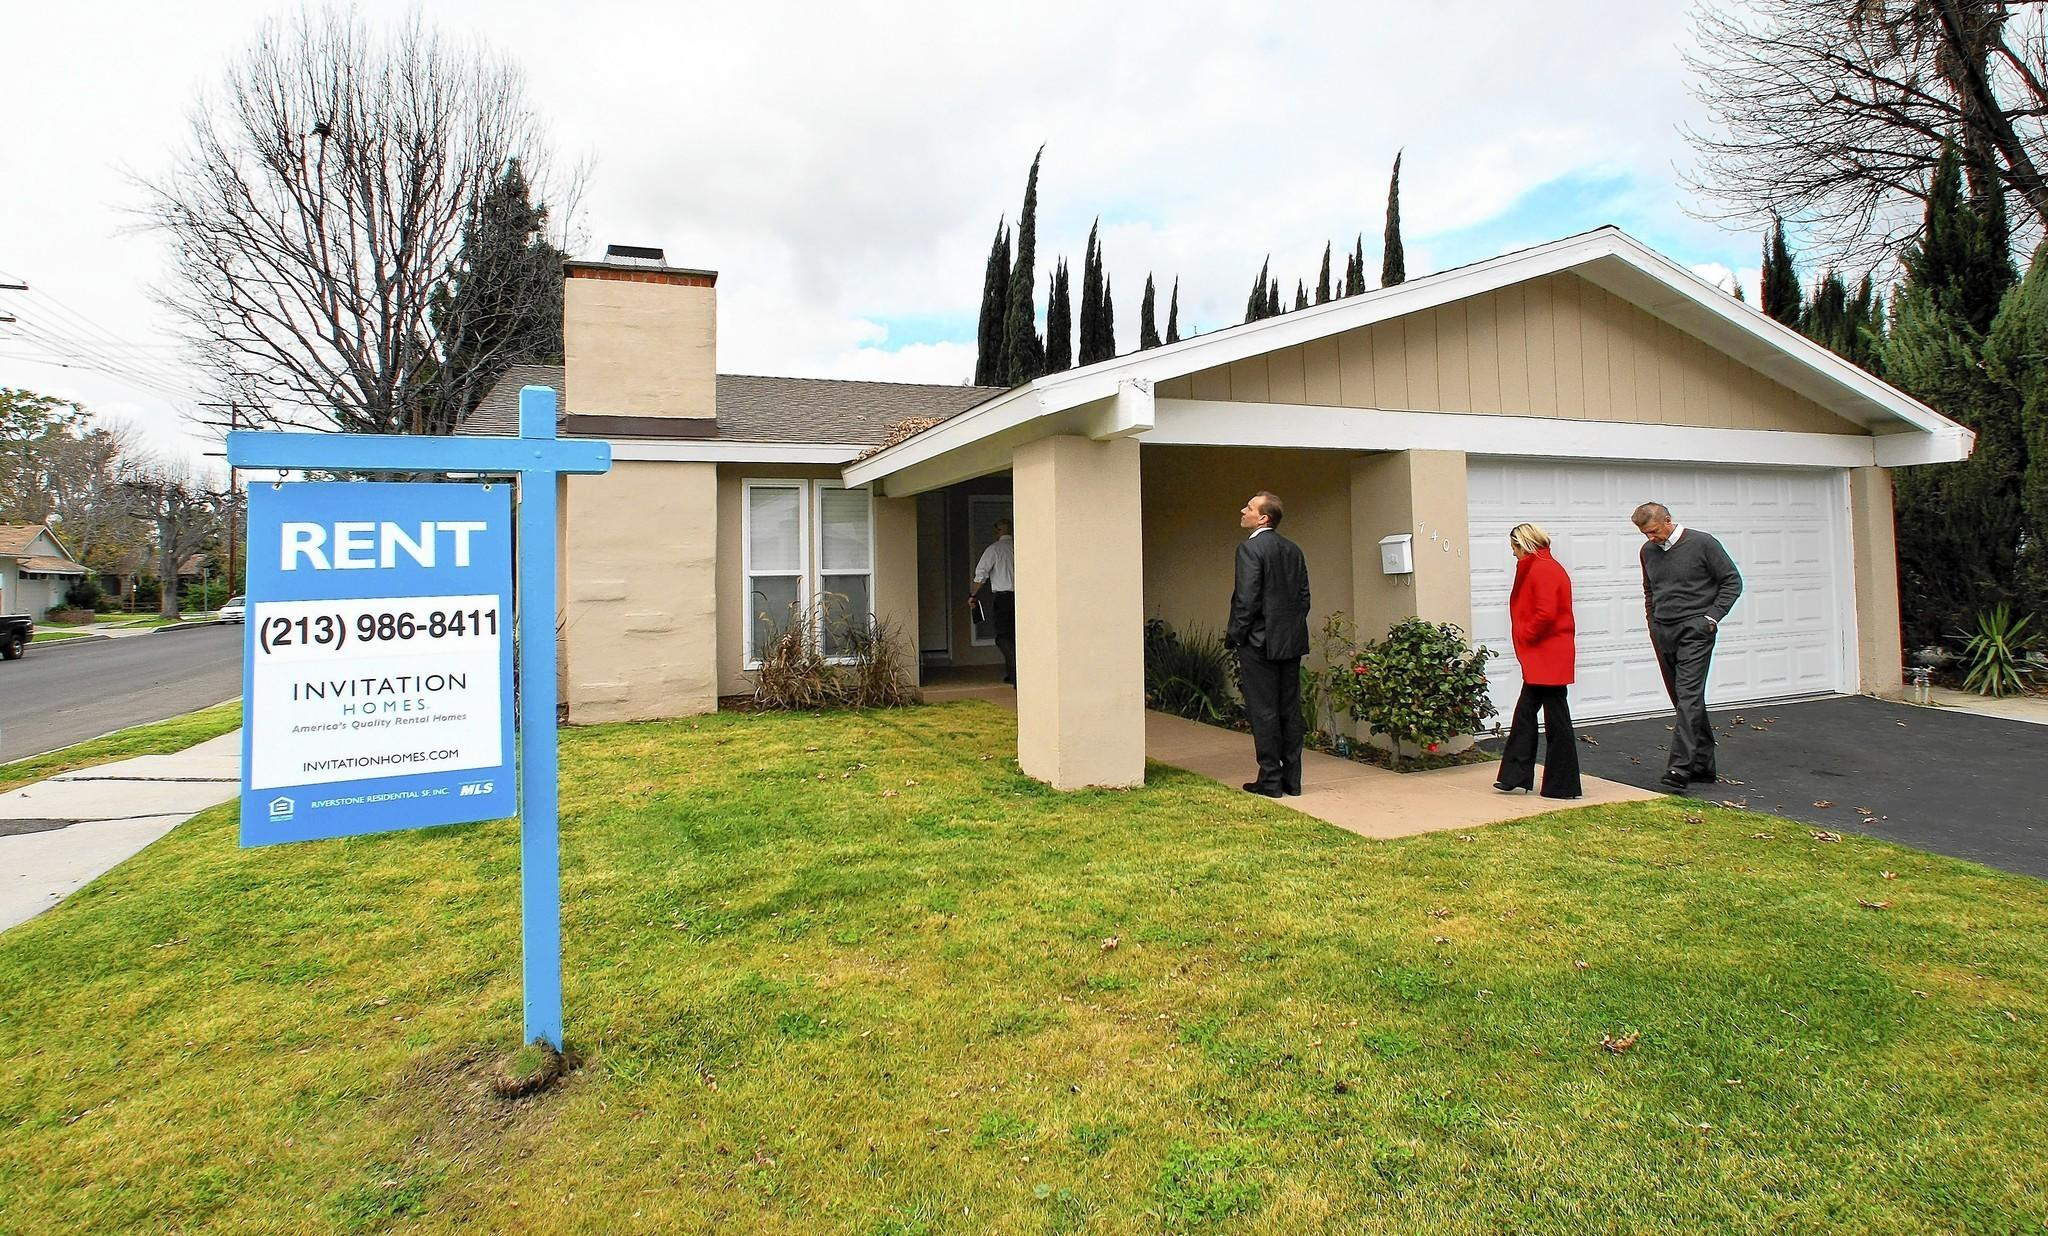 Officials from Blackstone Group's Invitation Homes tour a home in Canoga Park that the company bought, fixed up and turned into a rental property.